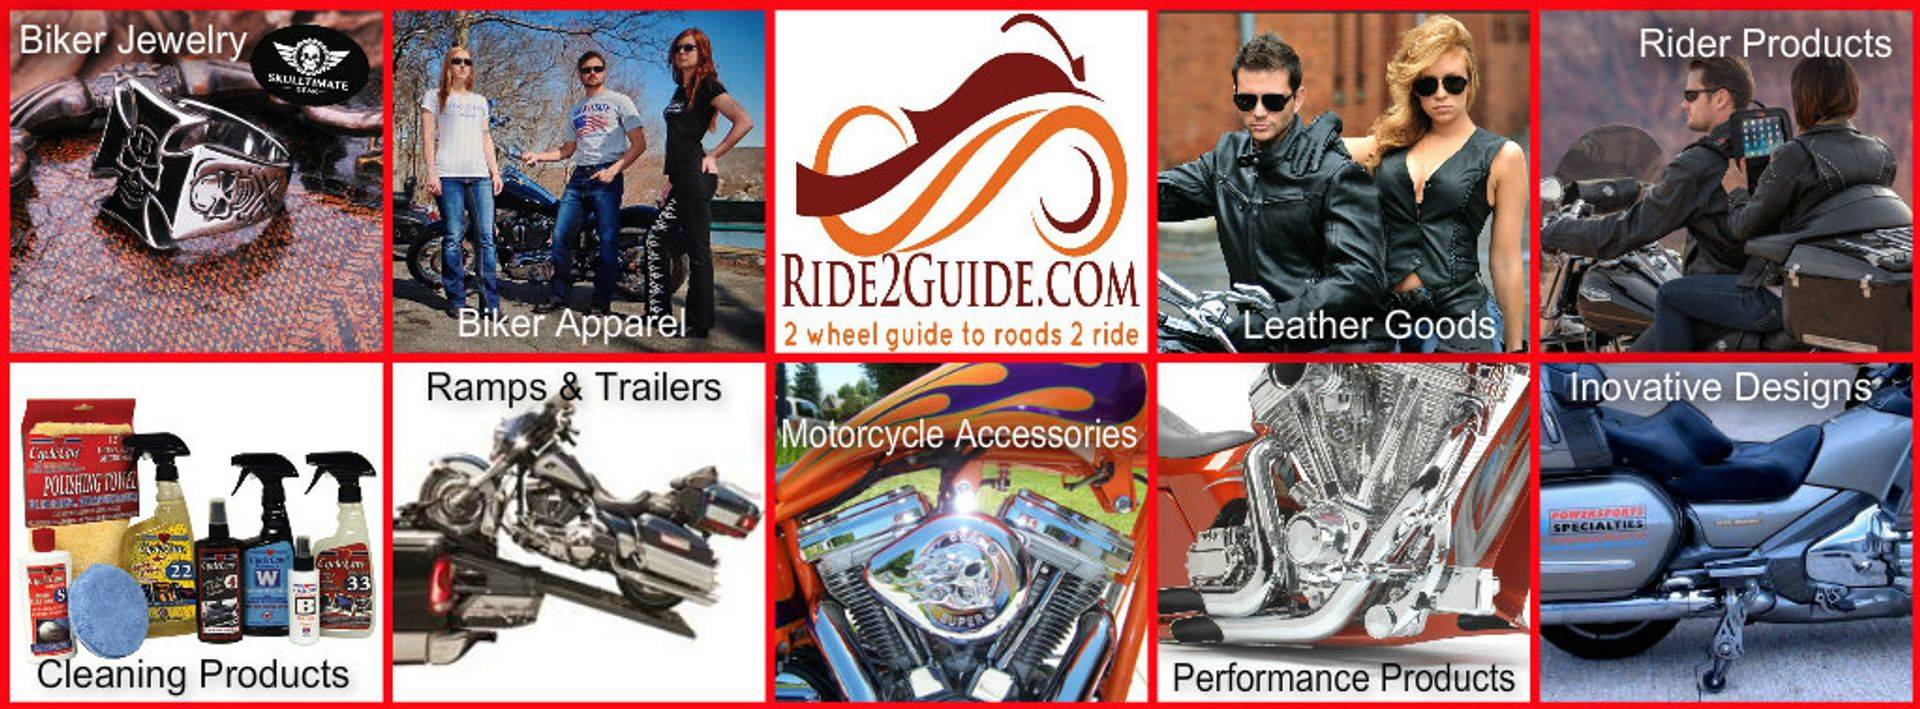 Motorcycle Accessories, Biker apparel, biker jewelry, motorcycle performance products and more.